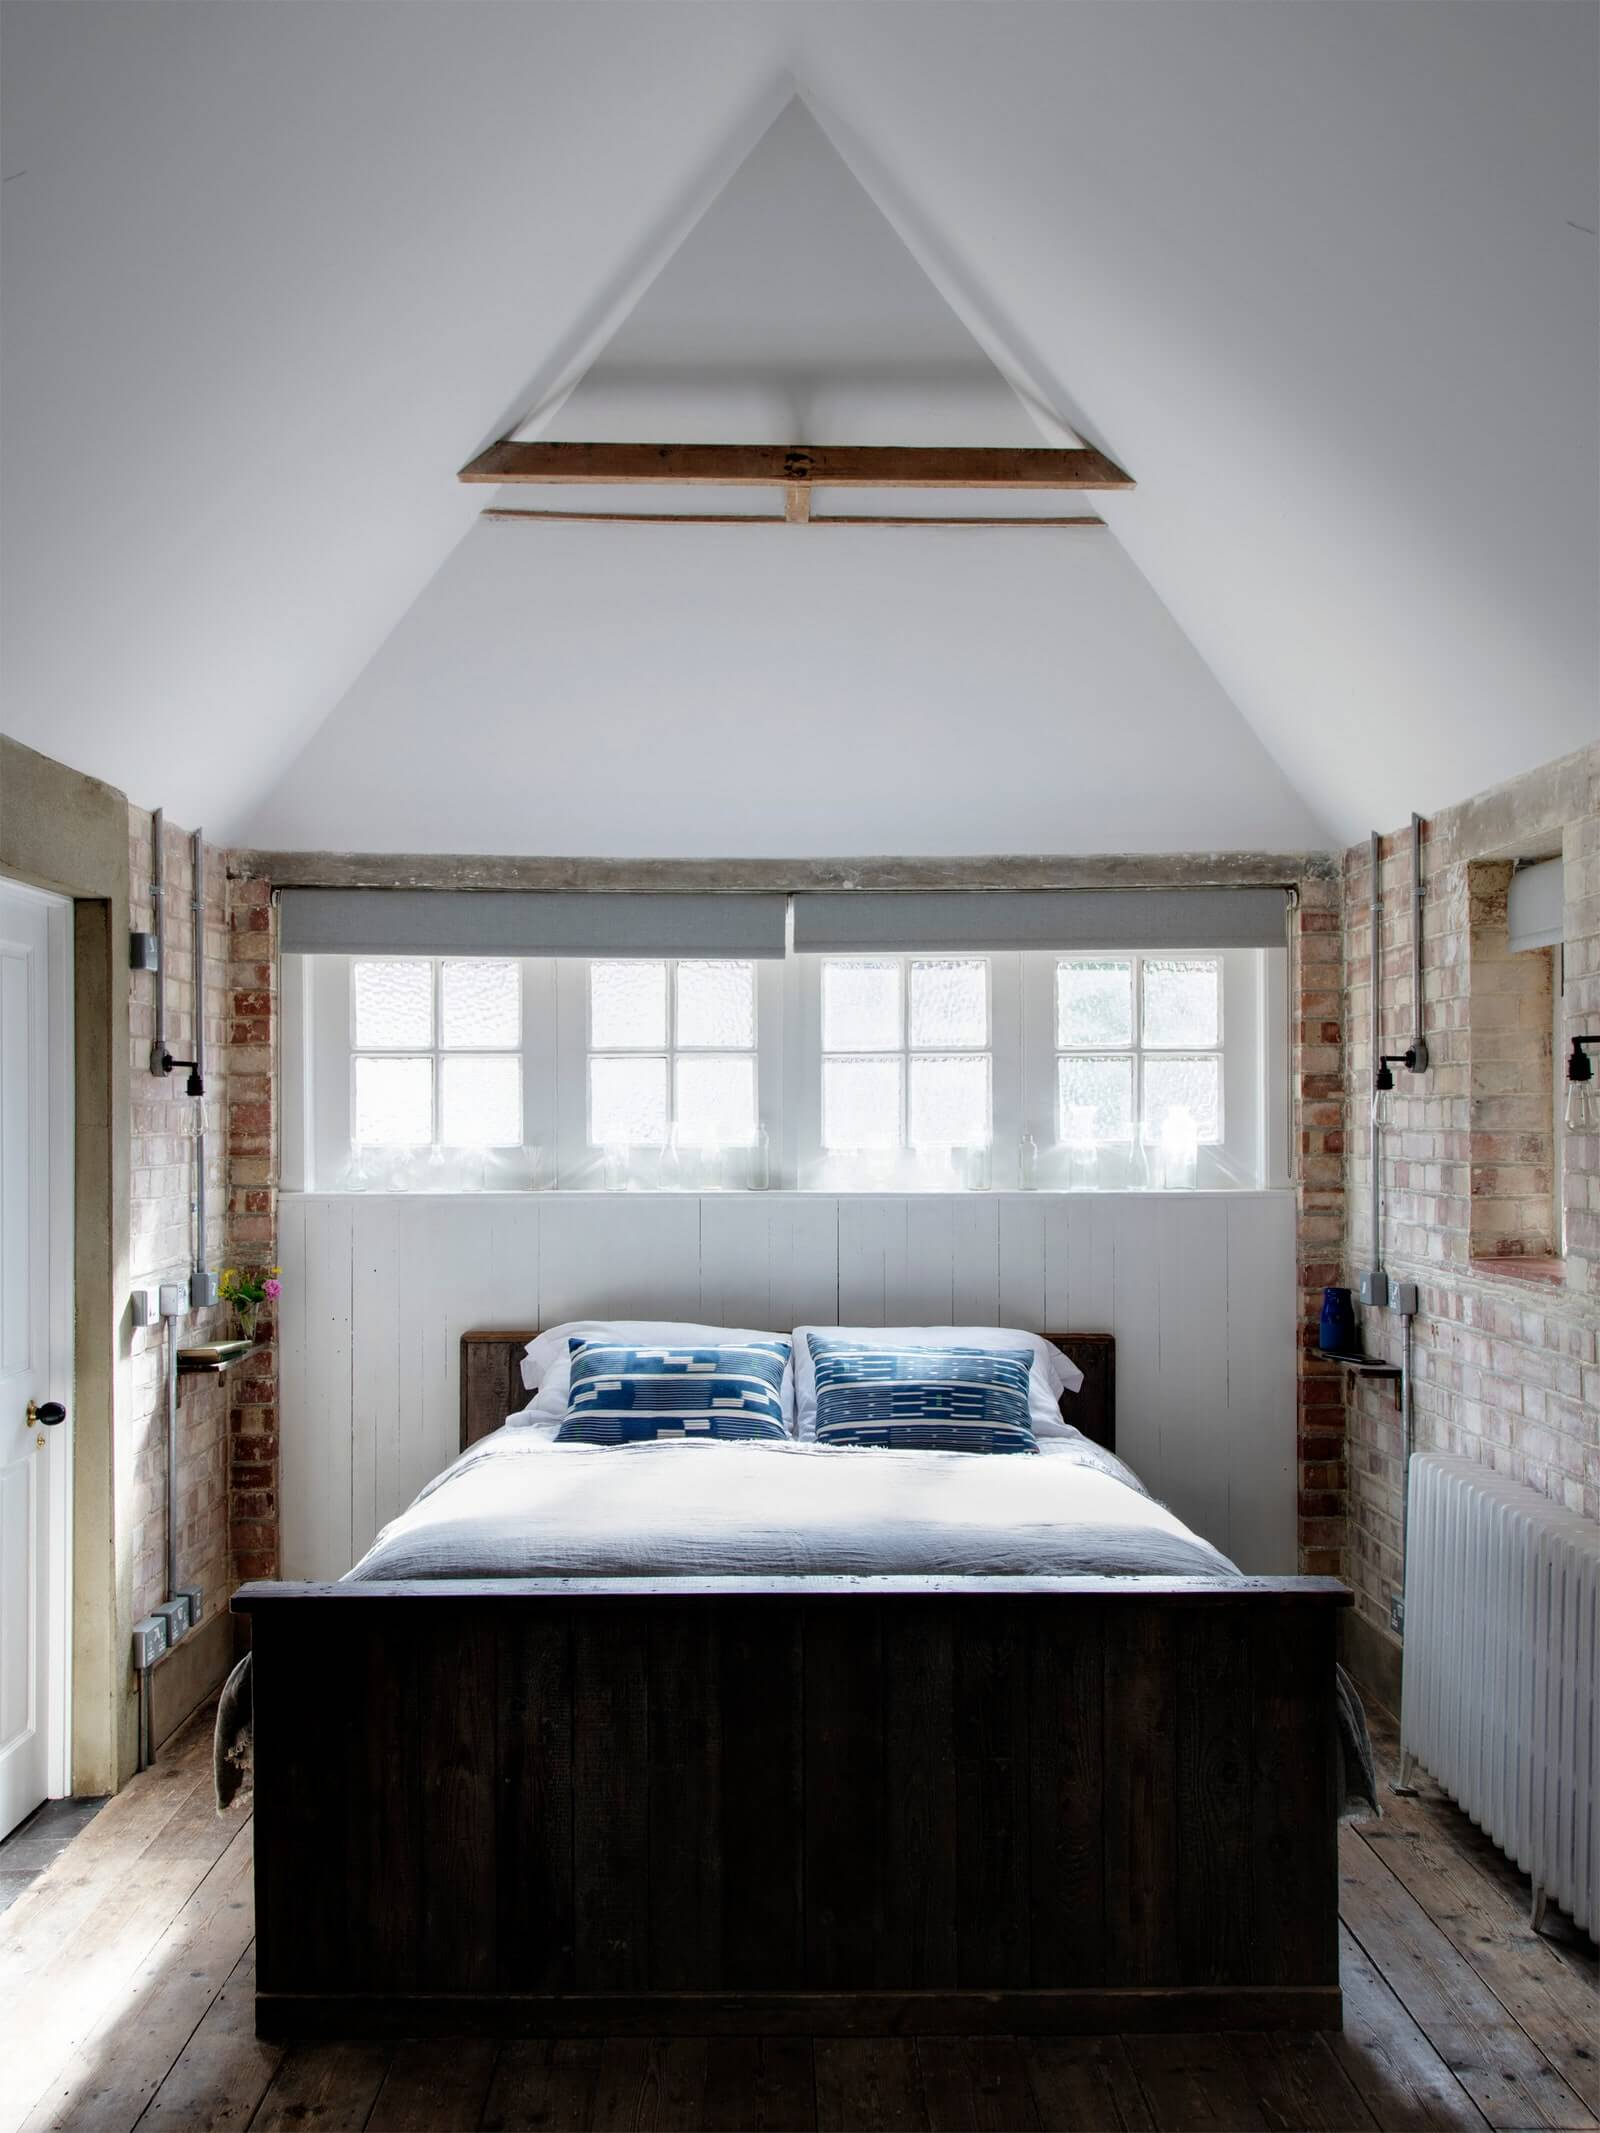 GARAGE MAKEOVER TO CHIC AND RUSTIC BEDROOM IDEAS